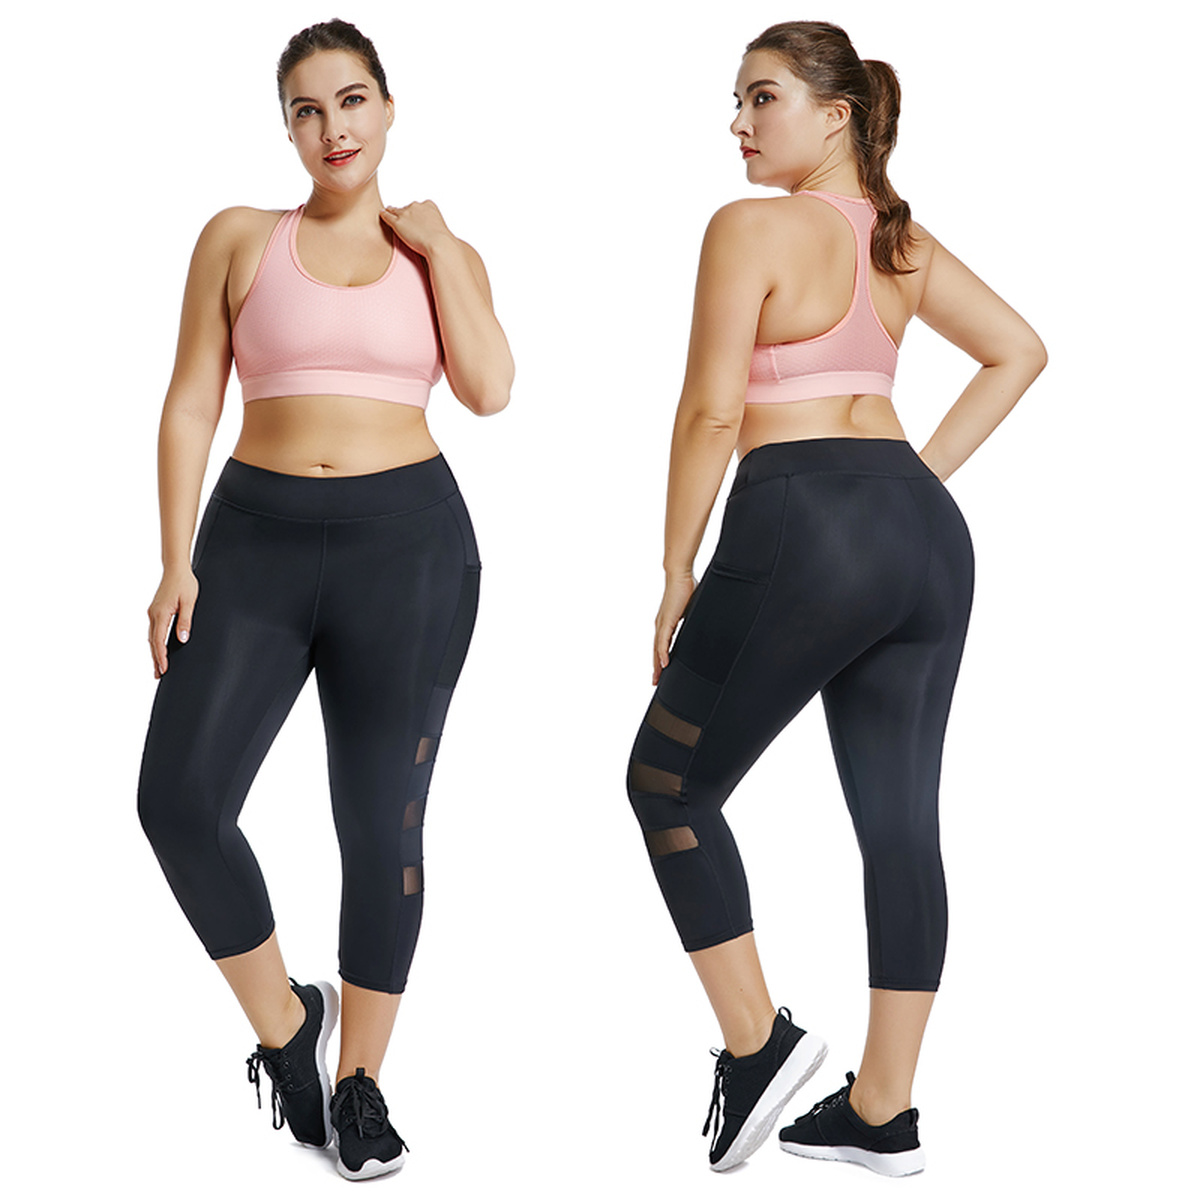 Joyshaper Plus Size Well Fitting Women Capri Workout Leggings With Pockets Breathable Mesh Mid-Calf Gym Sport Pants Jeggings